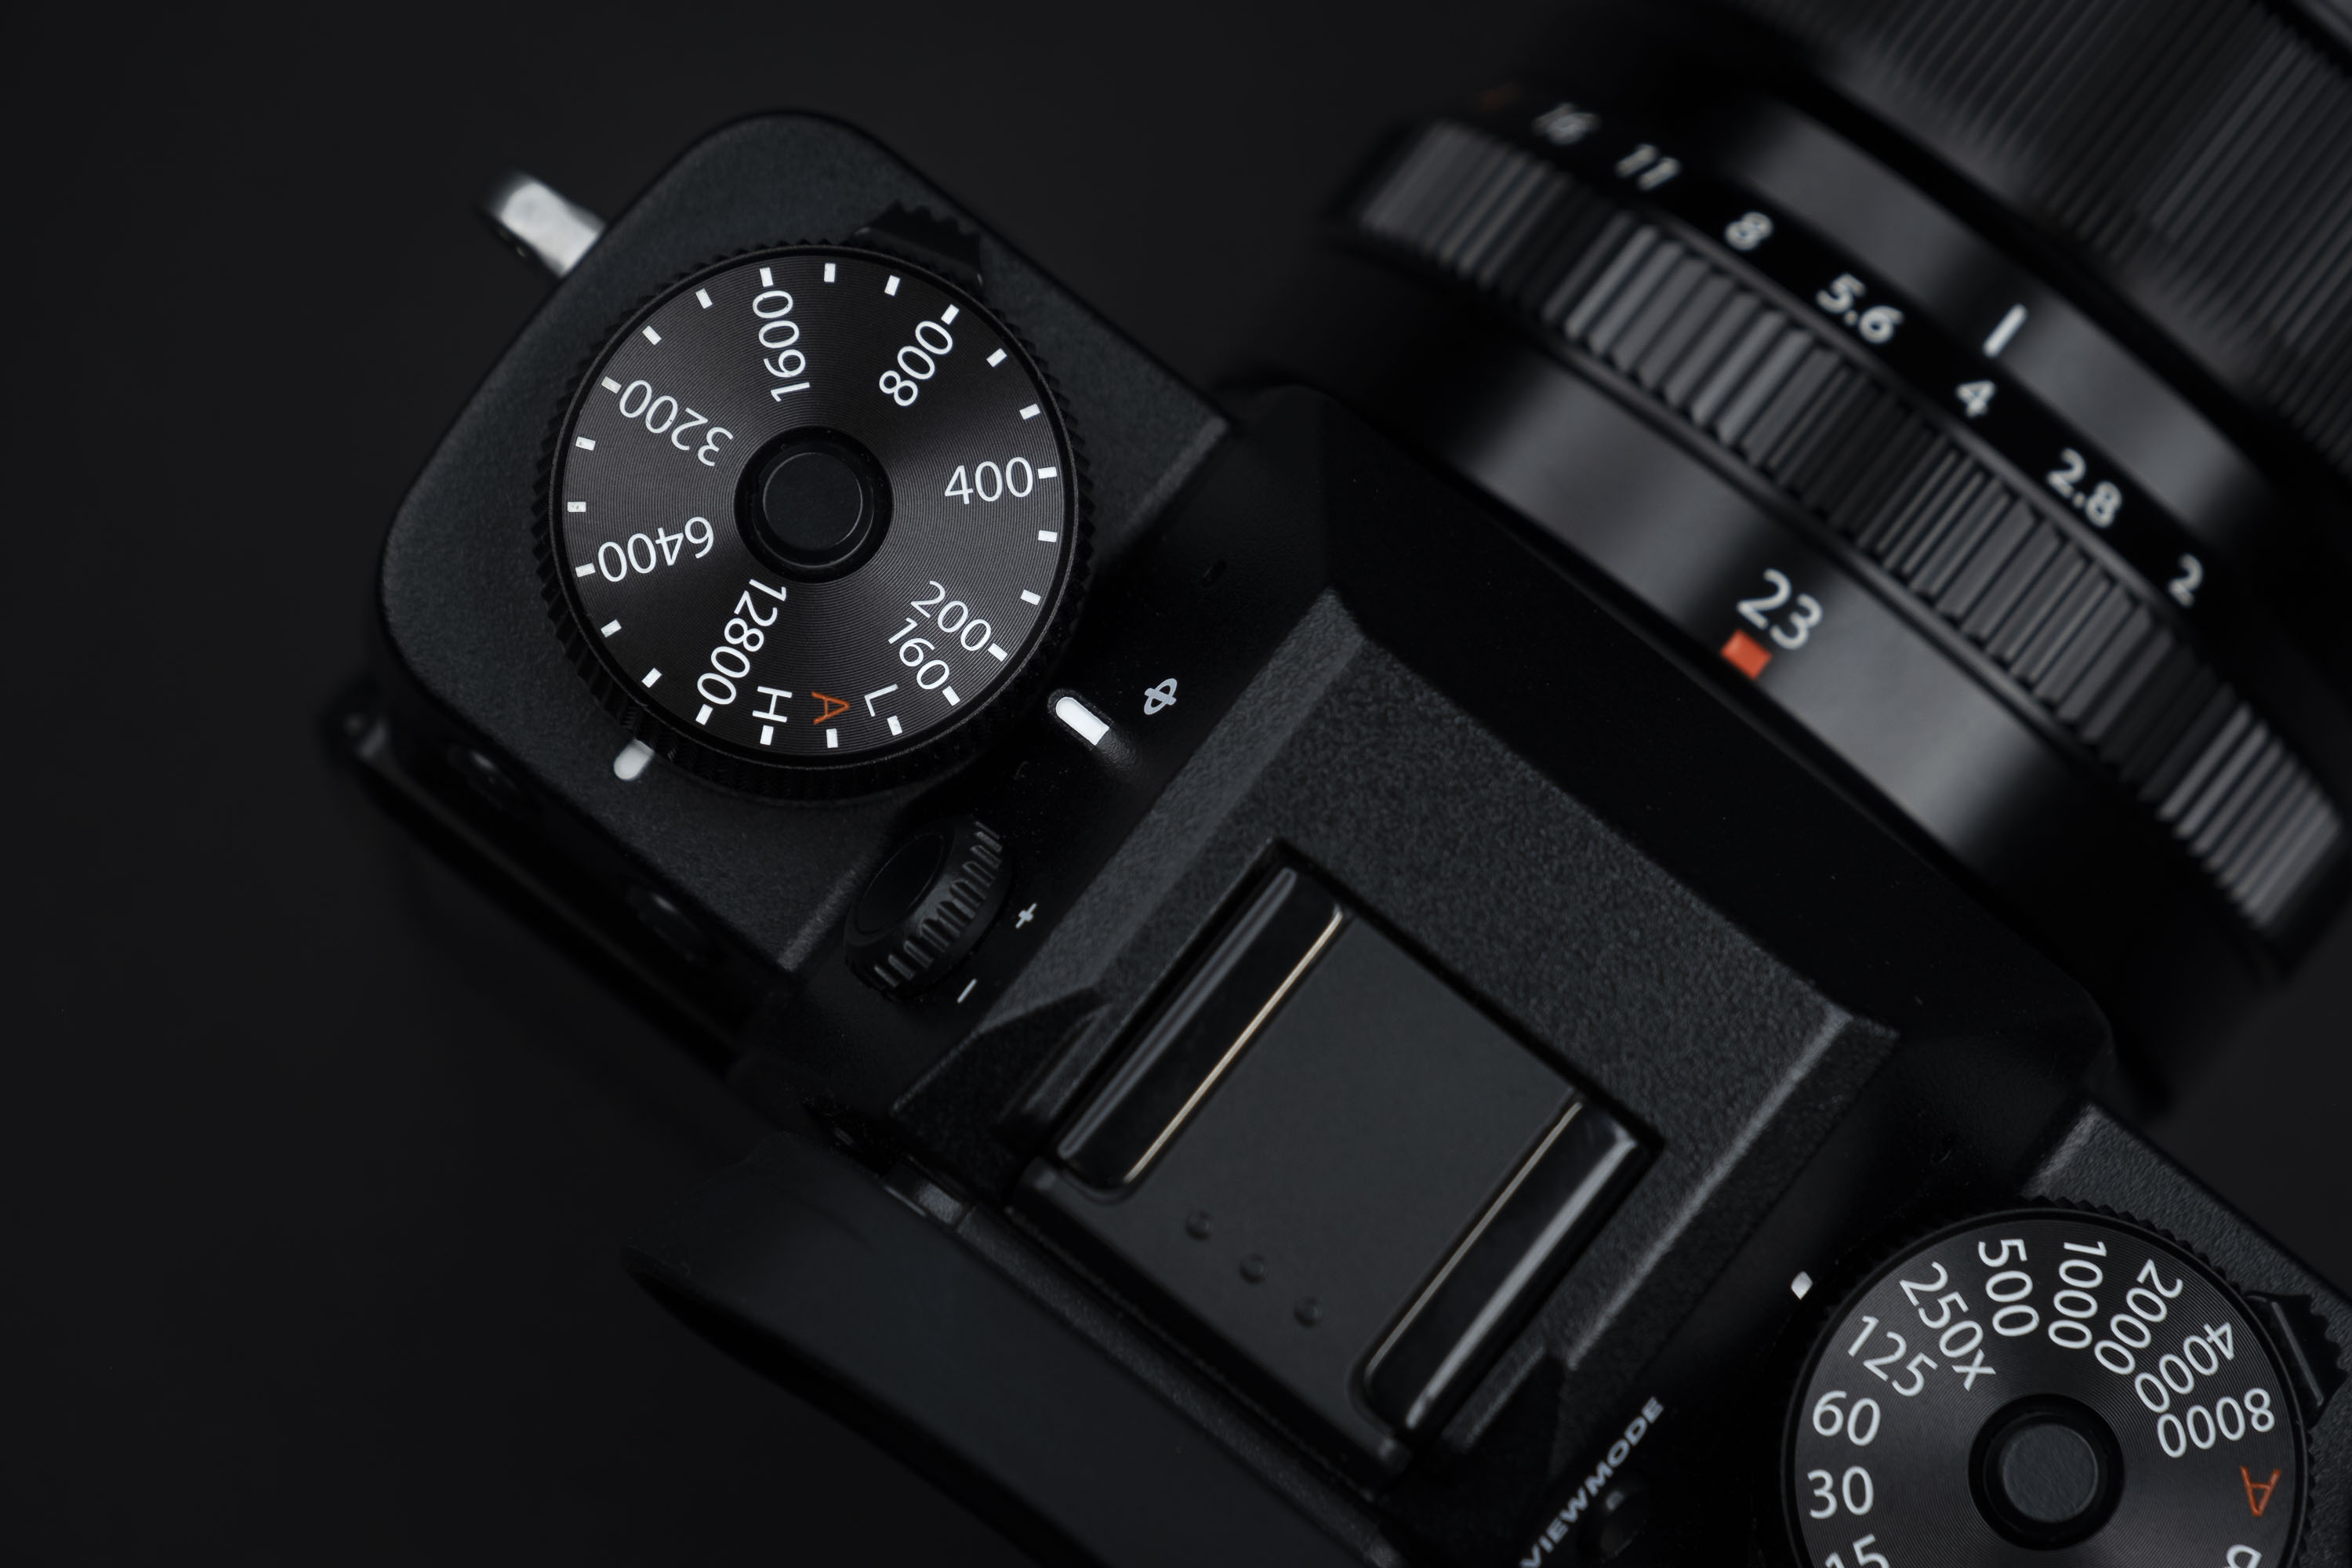 FUJIFILM X-T3 camera review